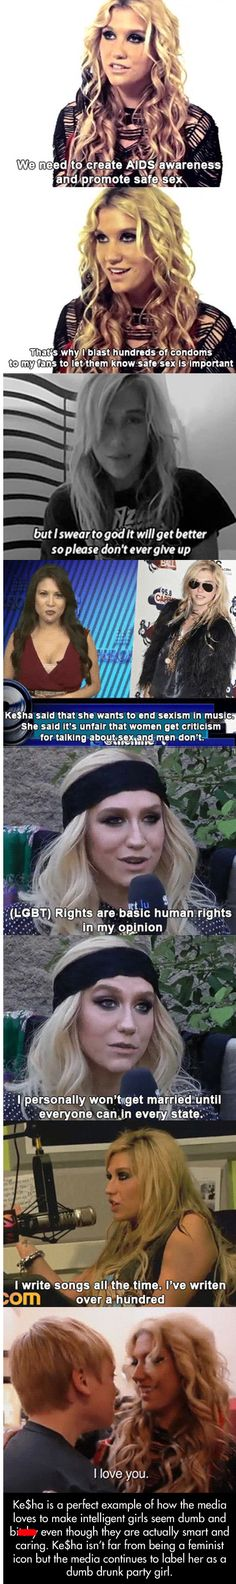 I don't personally like Ke$ha' s music. But I like her, as a person.